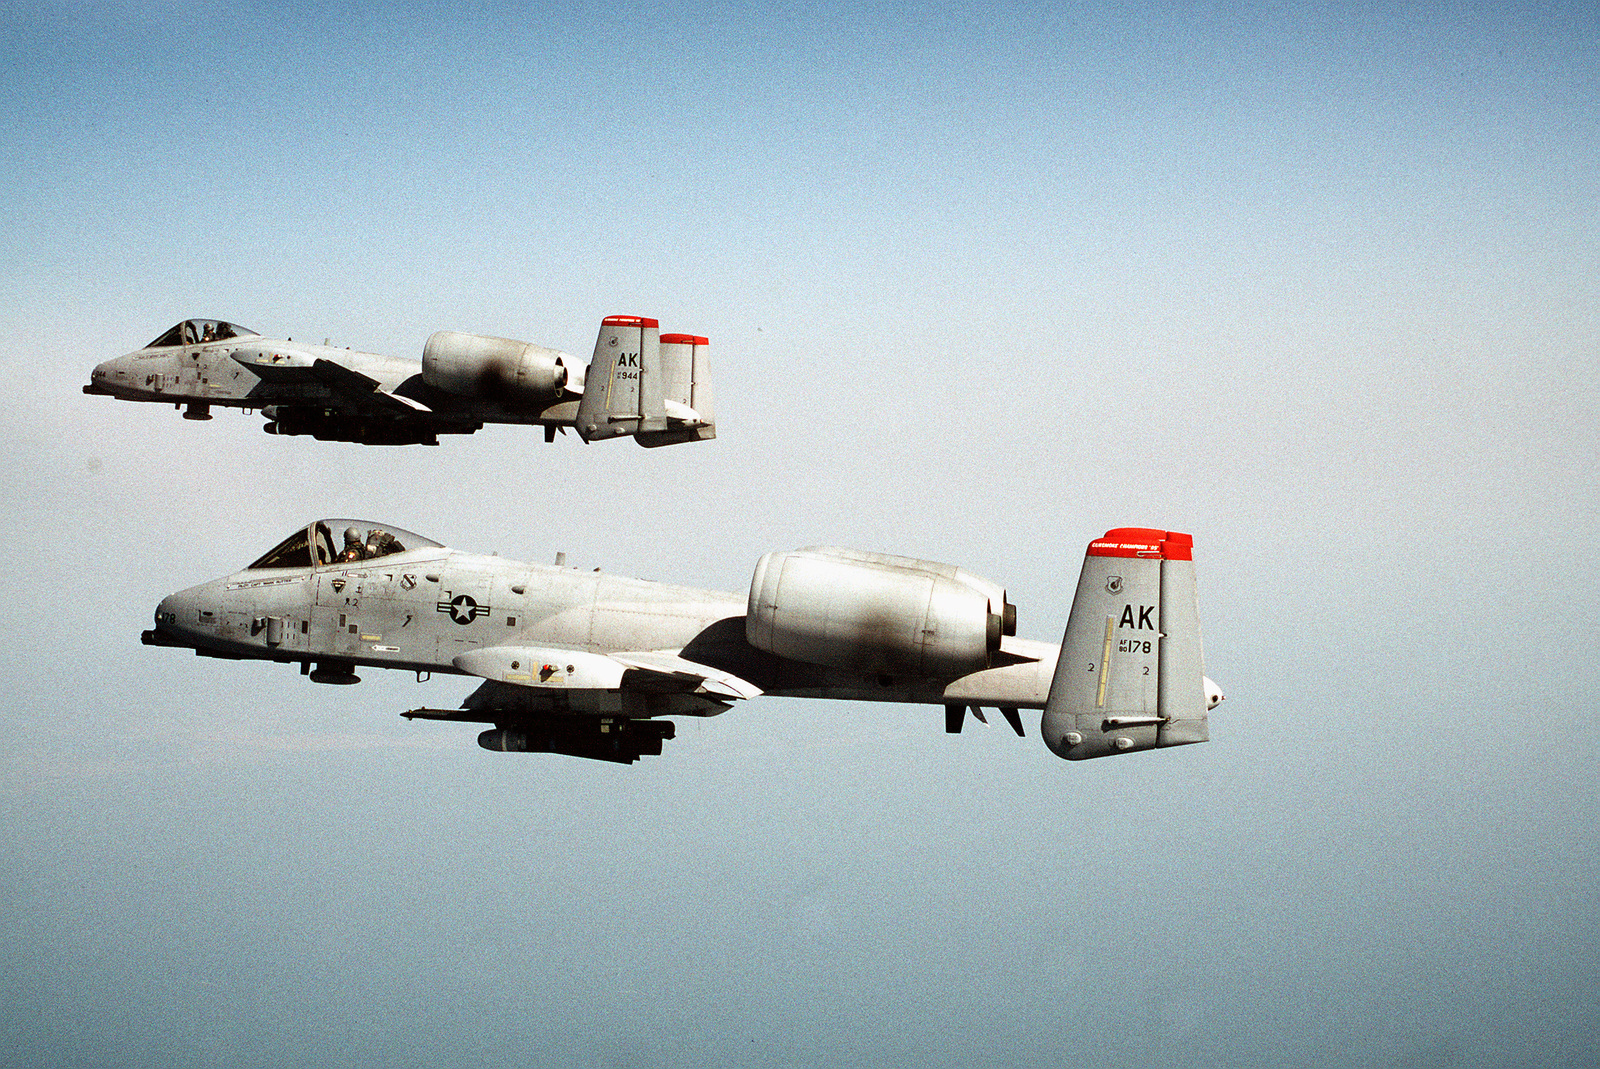 A-10 Warthogs from the 355th Fighter Squadron, Eielson Air Force Base, Alaska, fly over the coast at the Kunsan Bomb Range. The A-10s are returning from a live ordnance bomb drop. The 355th Fighter Squadron is the 1995 Top Guns at Gunsmoke '95